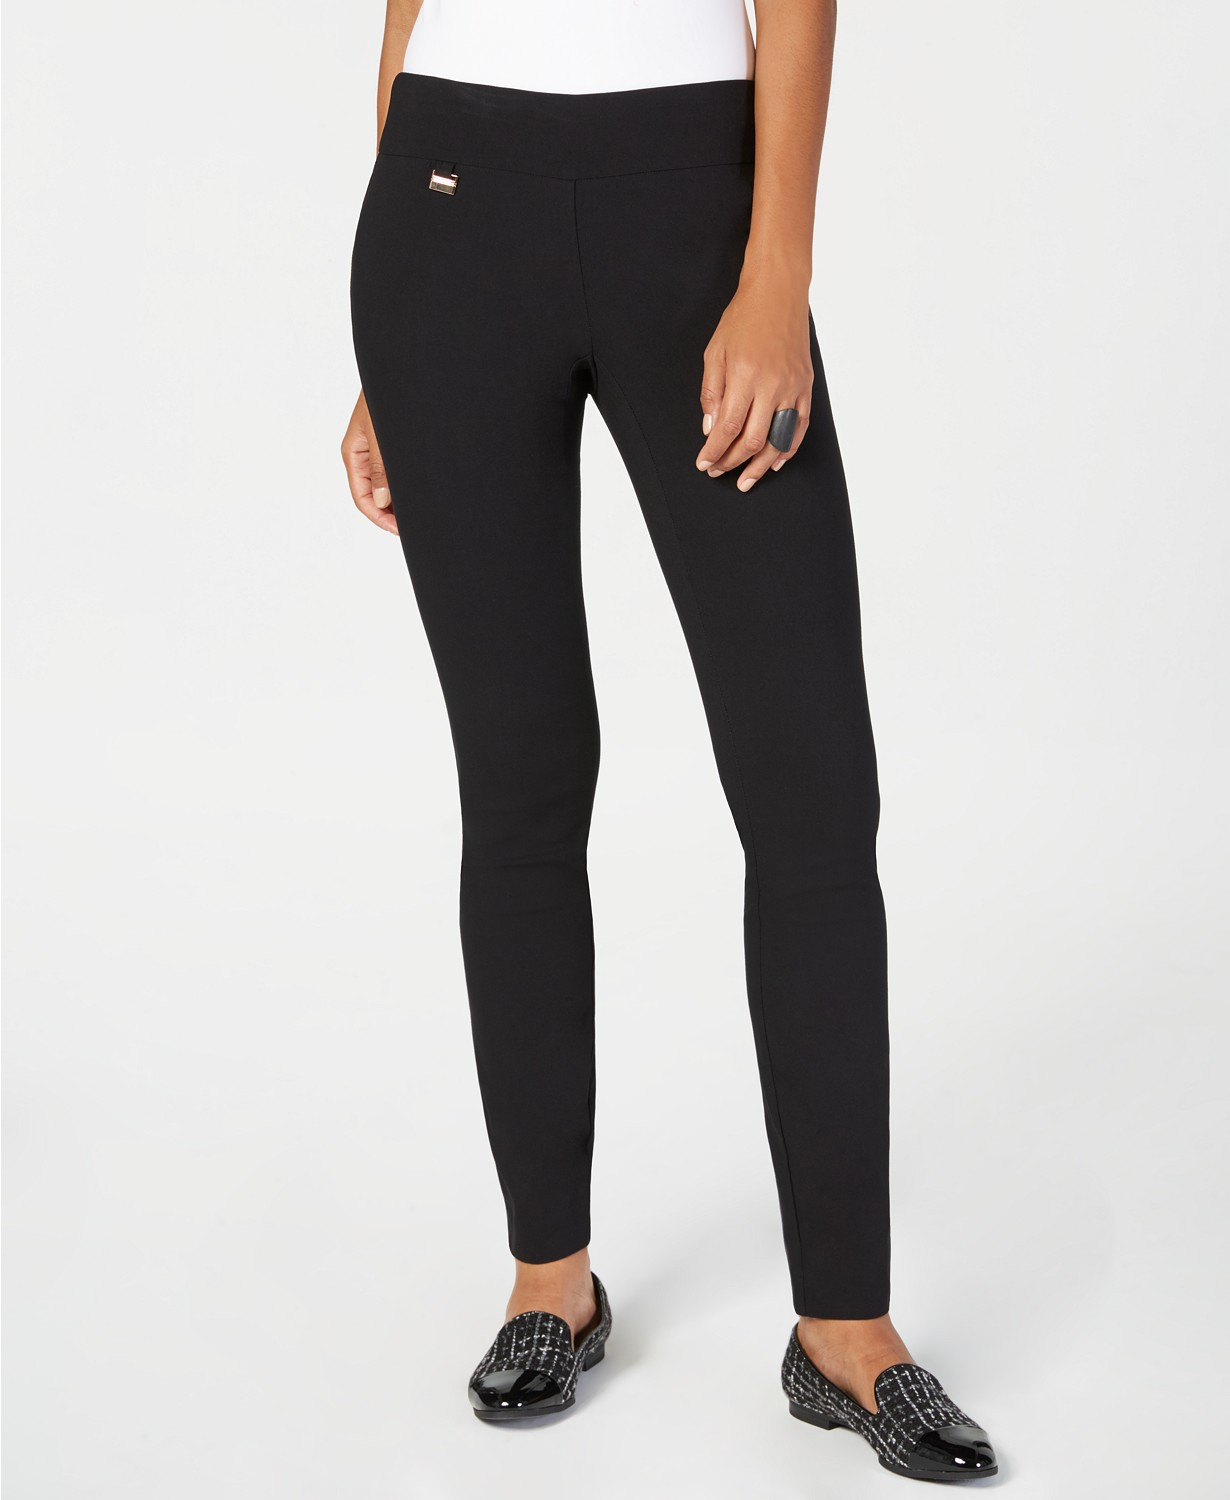 Alfani Tummy Control Pull-On Skinny Pants, Regular, Short, and Long Lengths, Created for Macy's